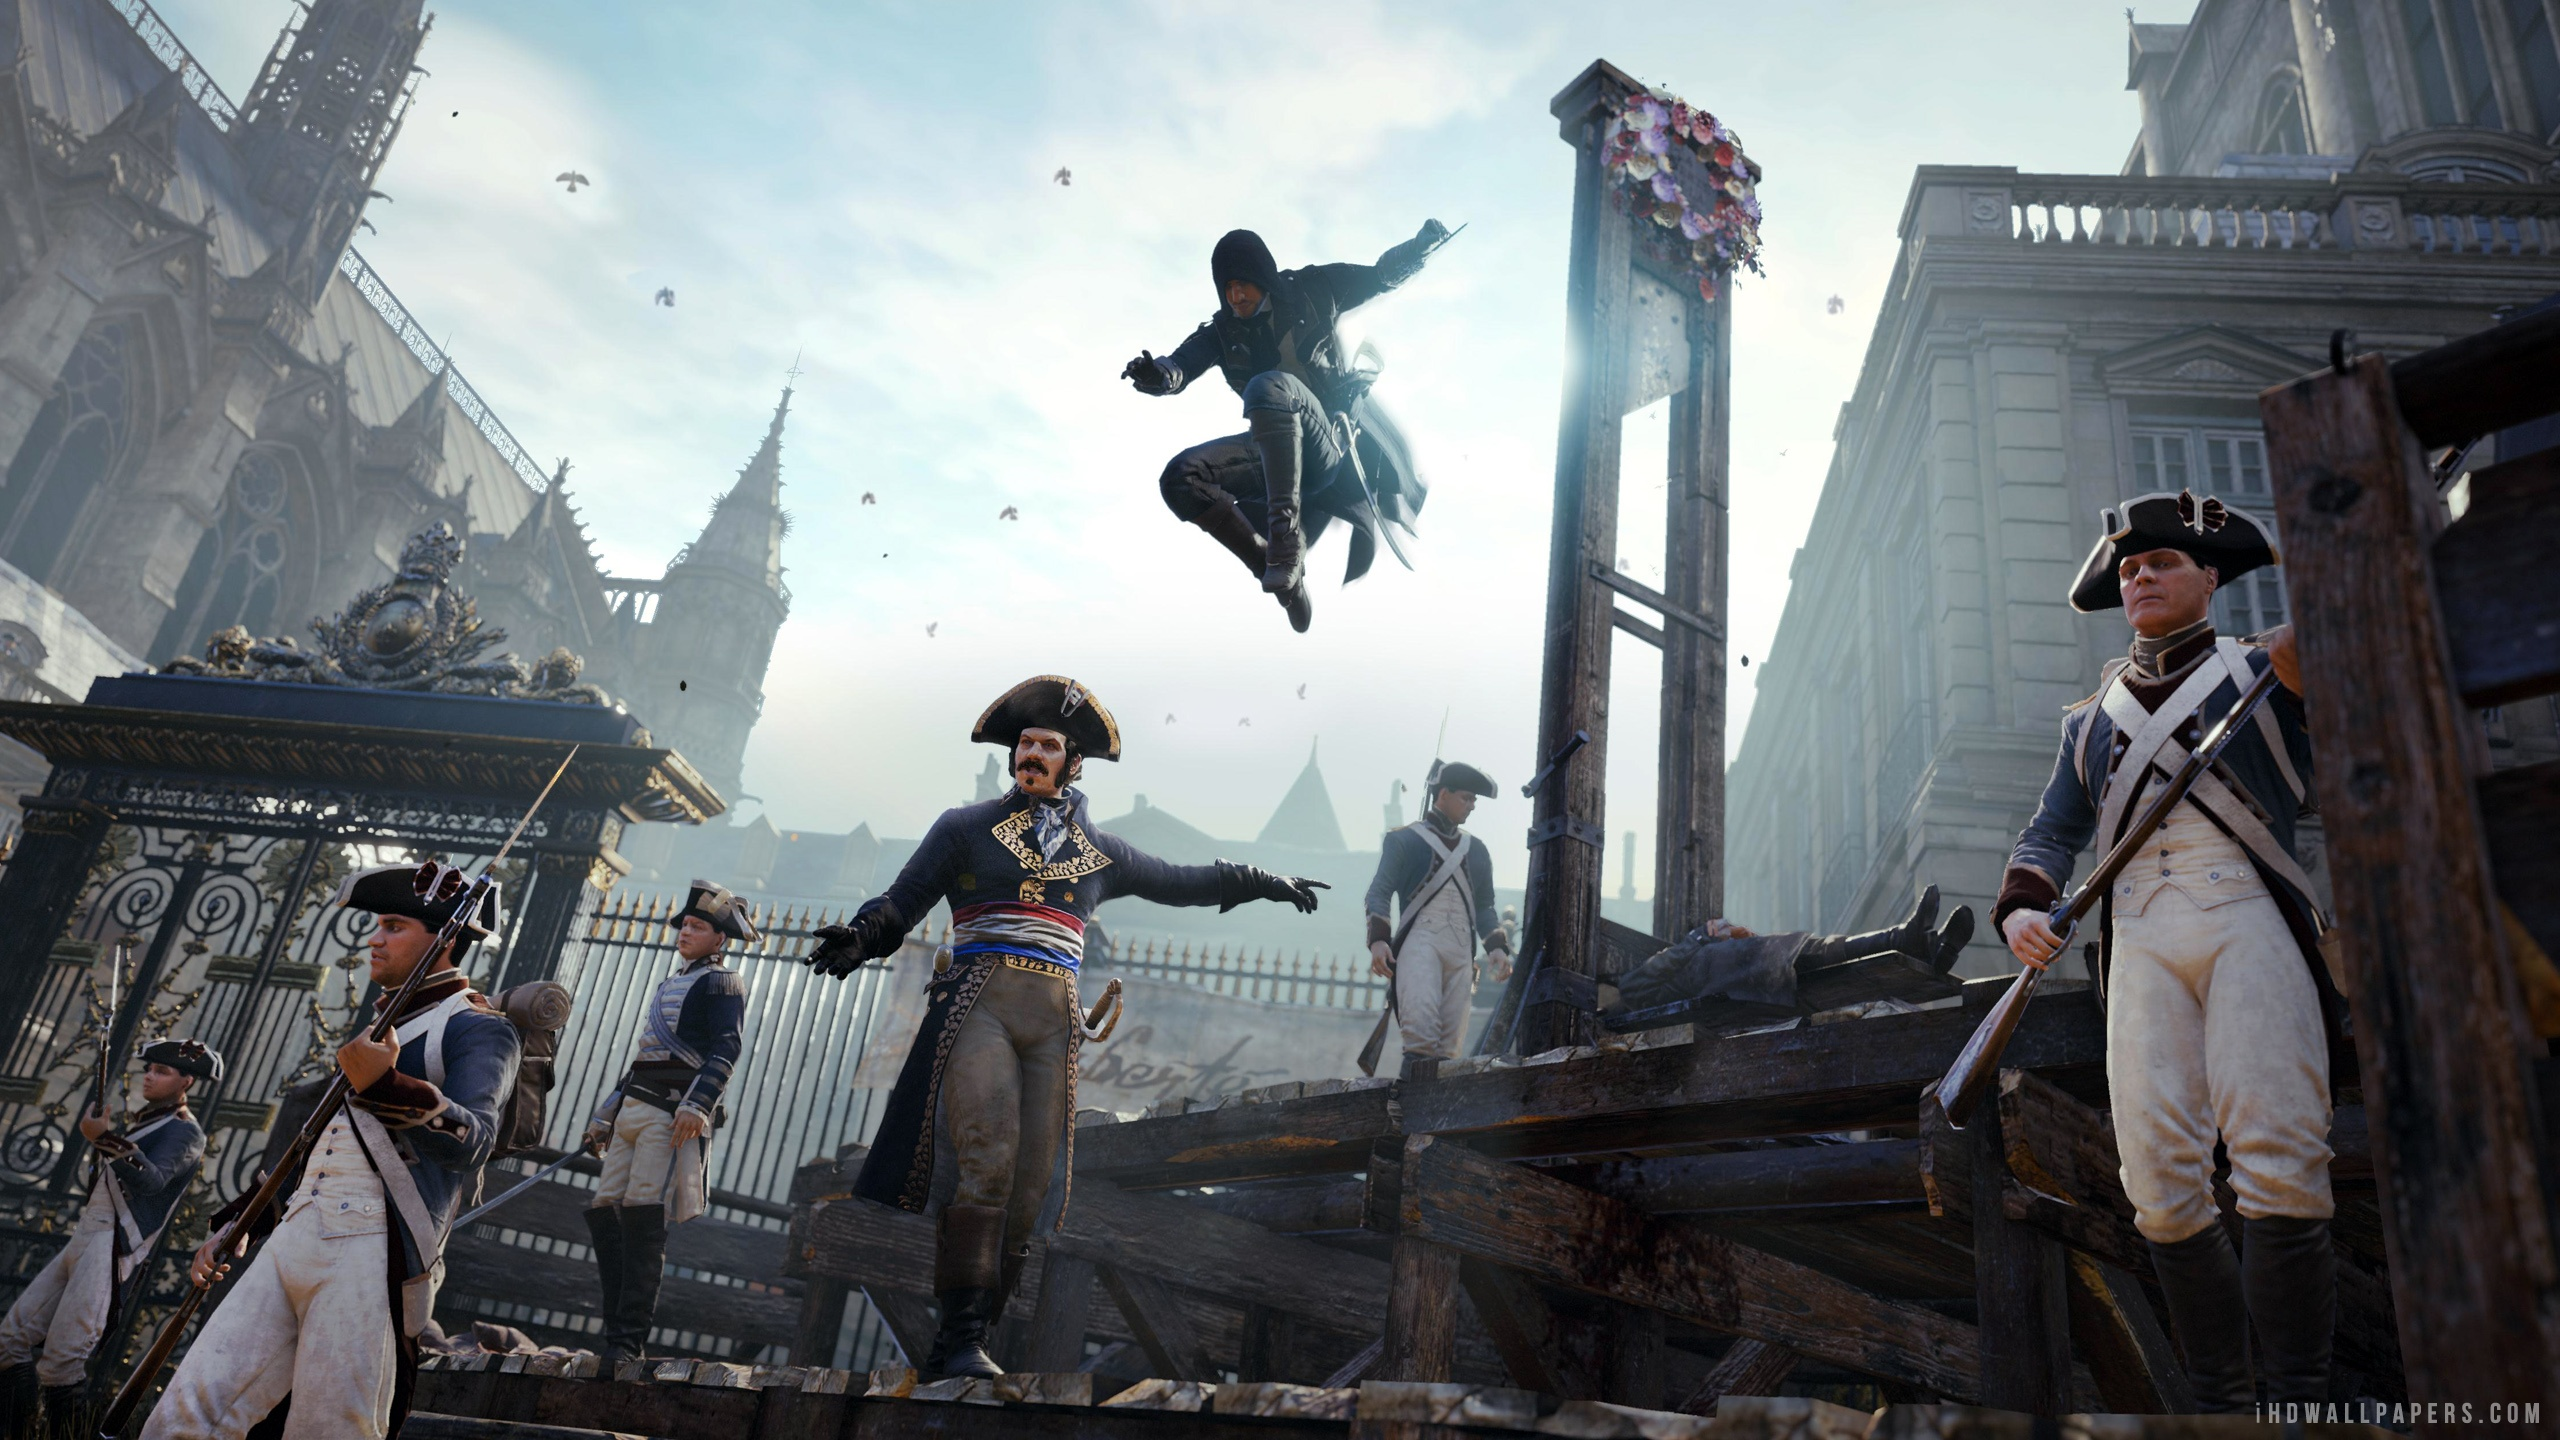 Assassins Creed Unity Action Play HD Wallpaper   iHD Wallpapers 2560x1440